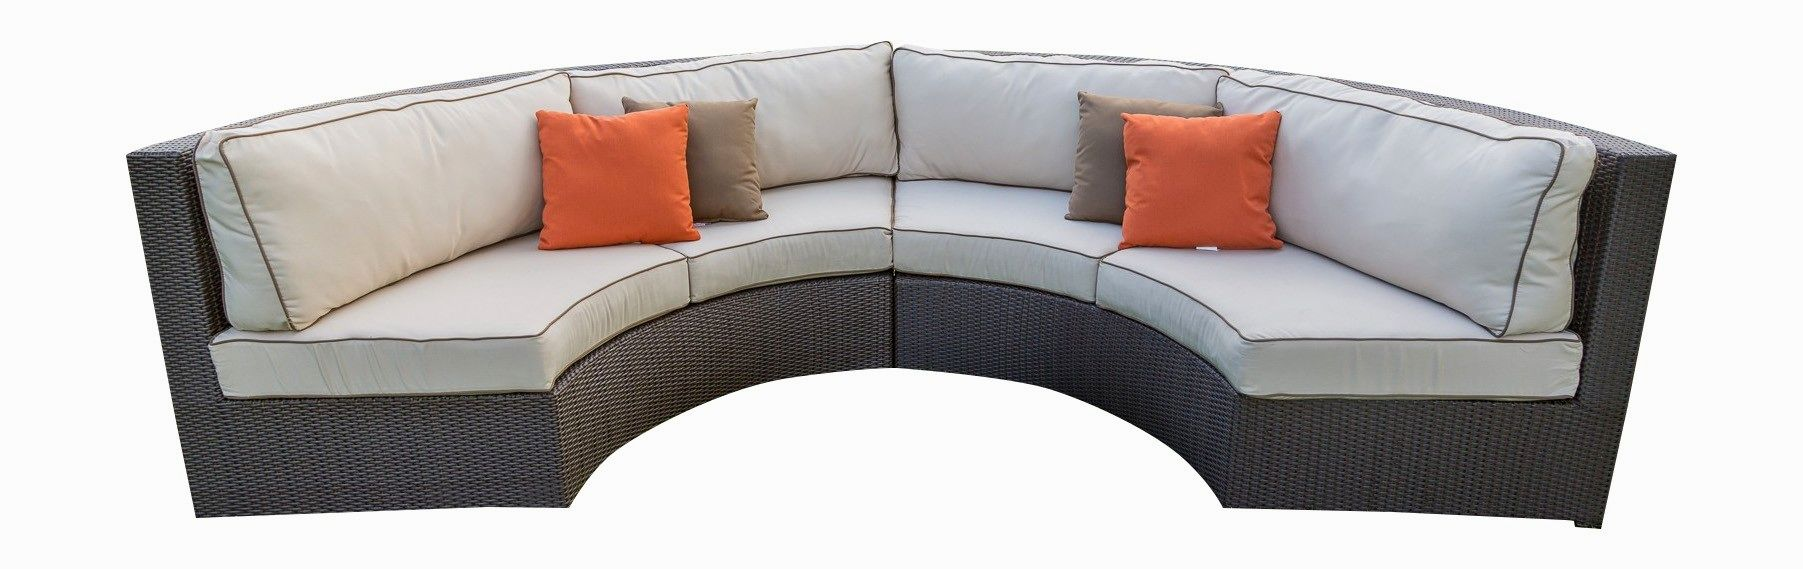 lovely unique sectional sofas pattern-Best Unique Sectional sofas Photo